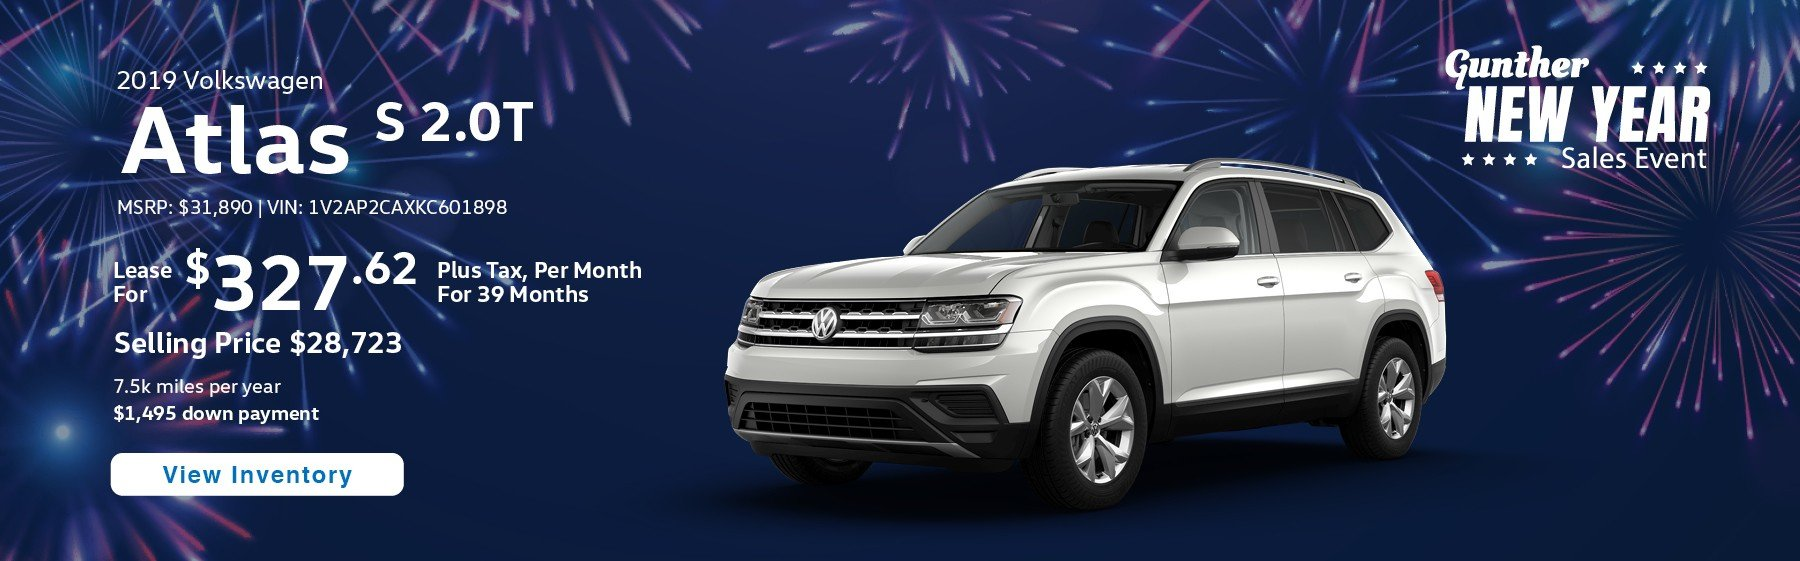 Lease the 2019 Atlas S 2.0T for $327.62 per month, plus tax for 39 months.